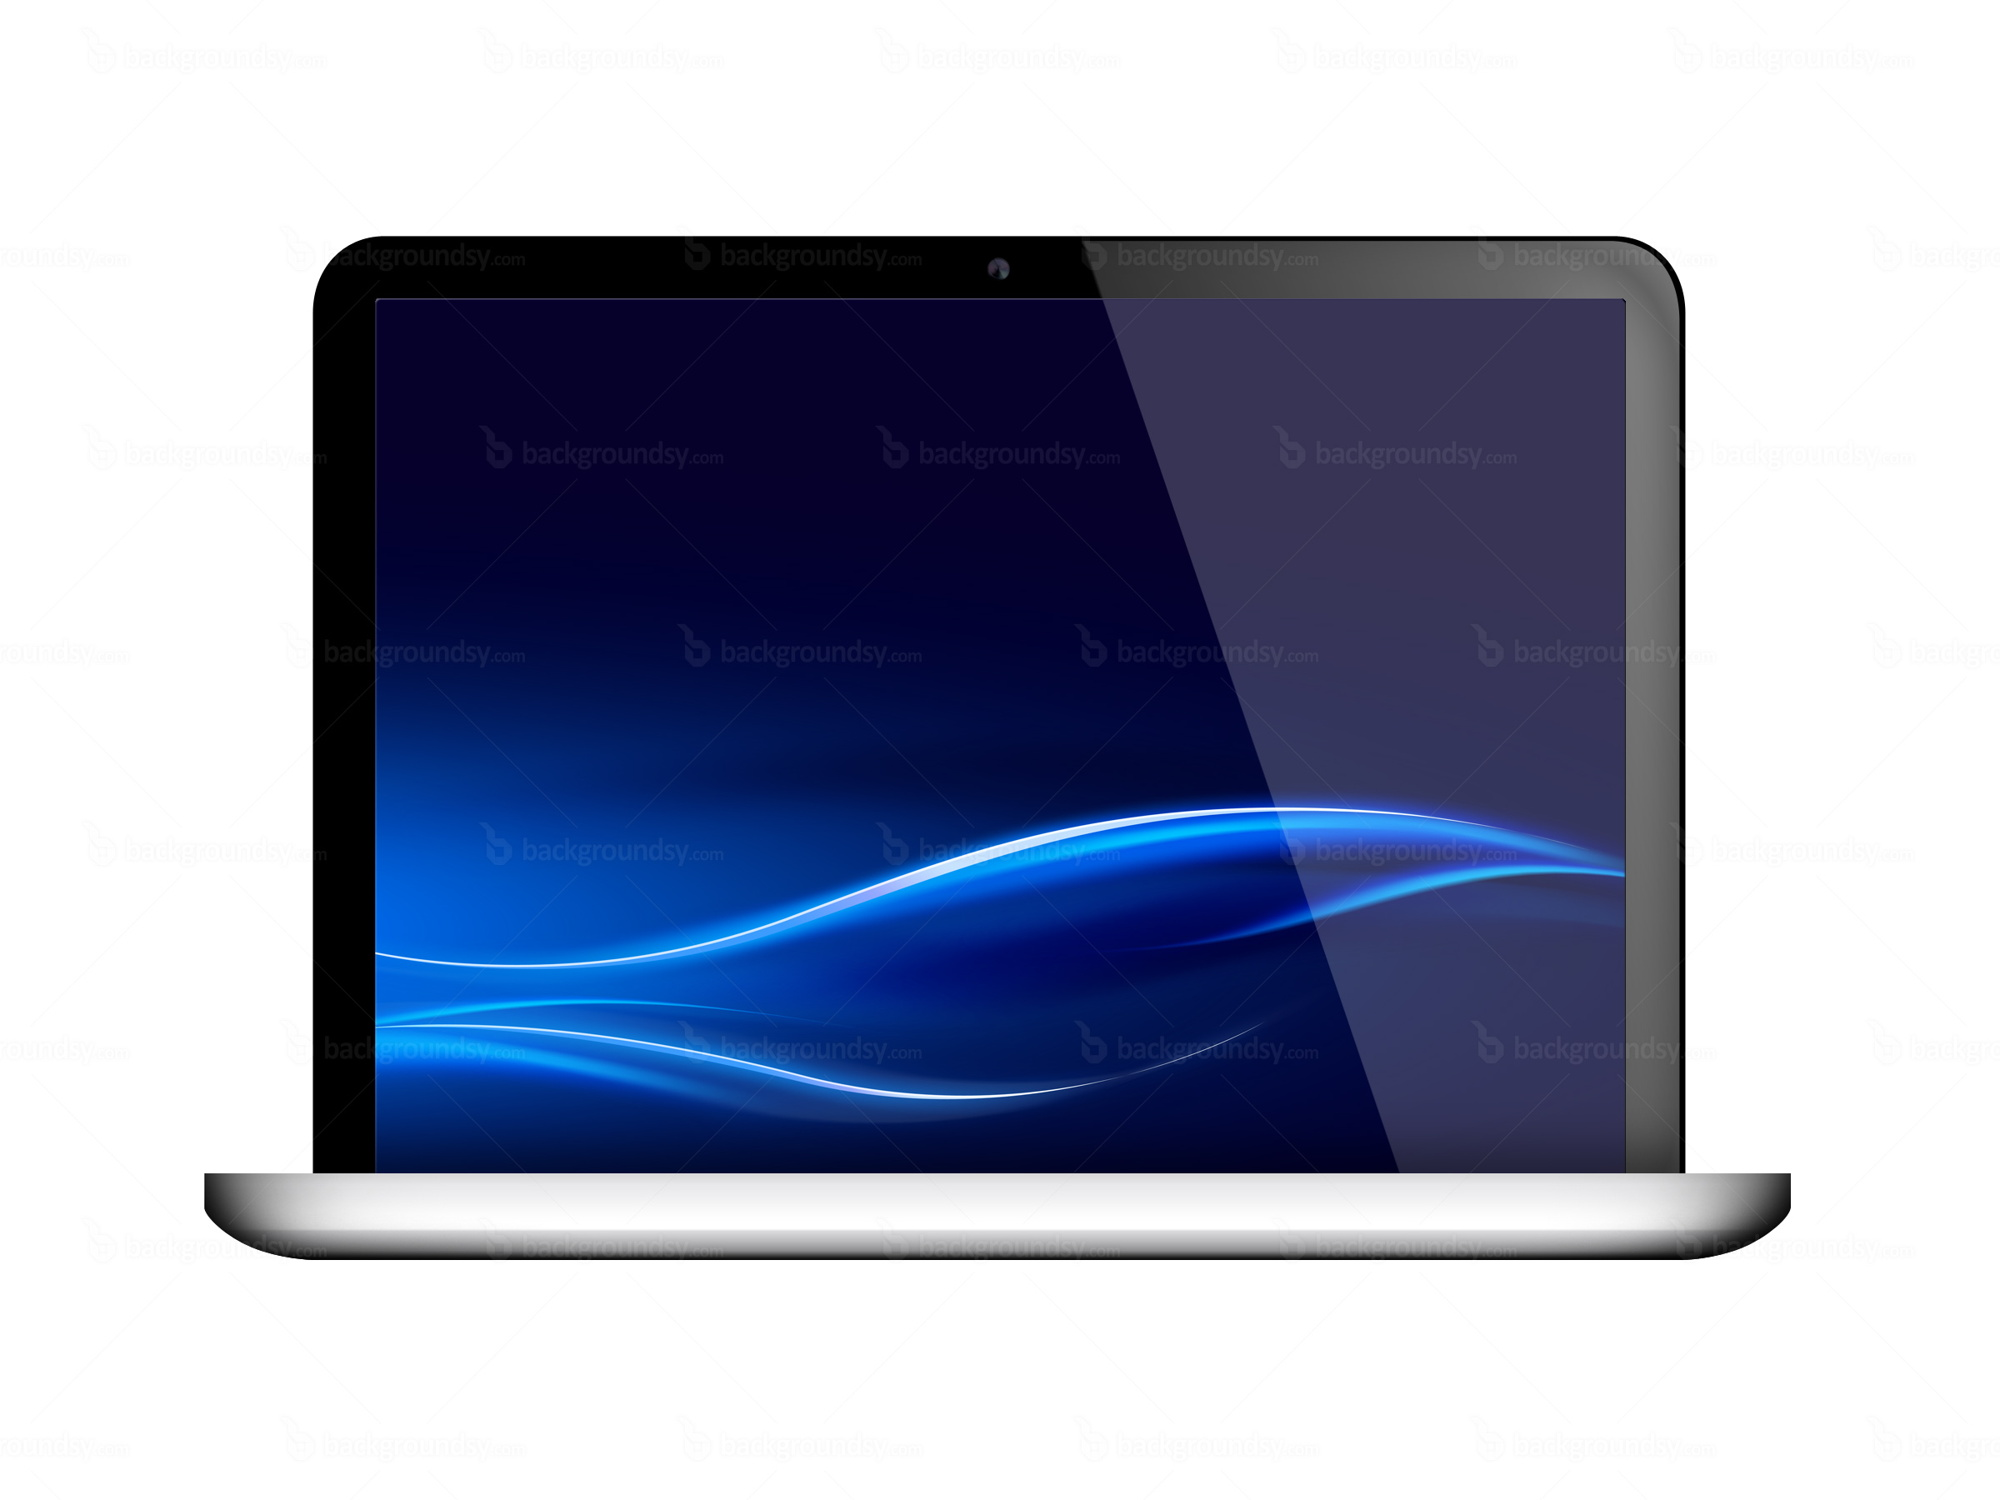 Laptop Icon Psd Backgroundsy Com